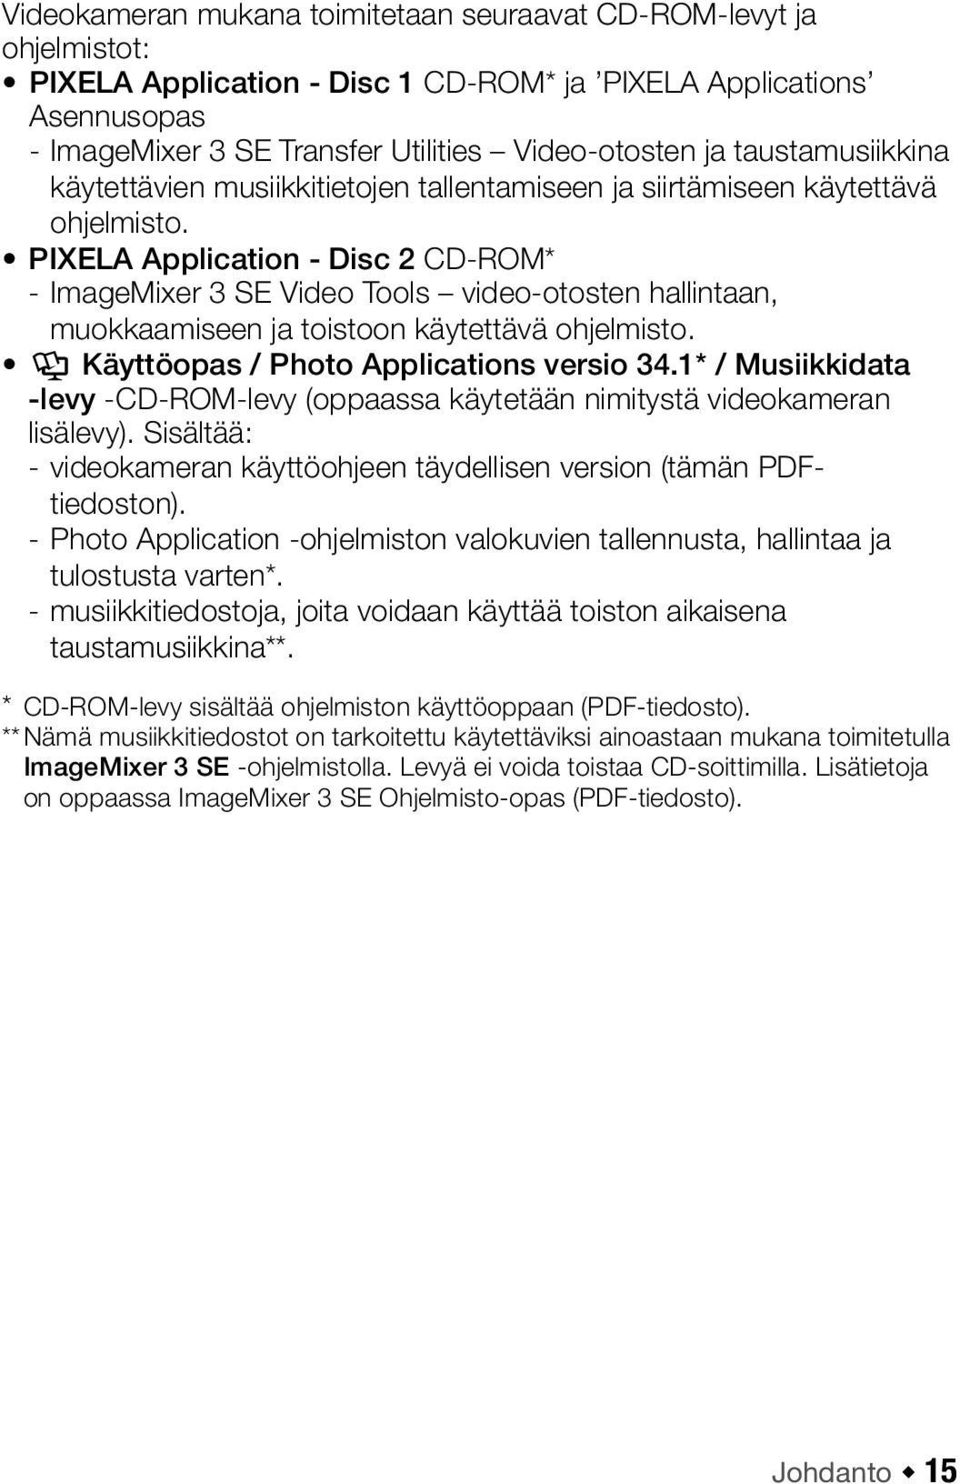 PIXELA Application - Disc 2 CD-ROM* - ImageMixer 3 SE Video Tools video-otosten hallintaan, muokkaamiseen ja toistoon käytettävä ohjelmisto. Y Käyttöopas / Photo Applications versio 34.